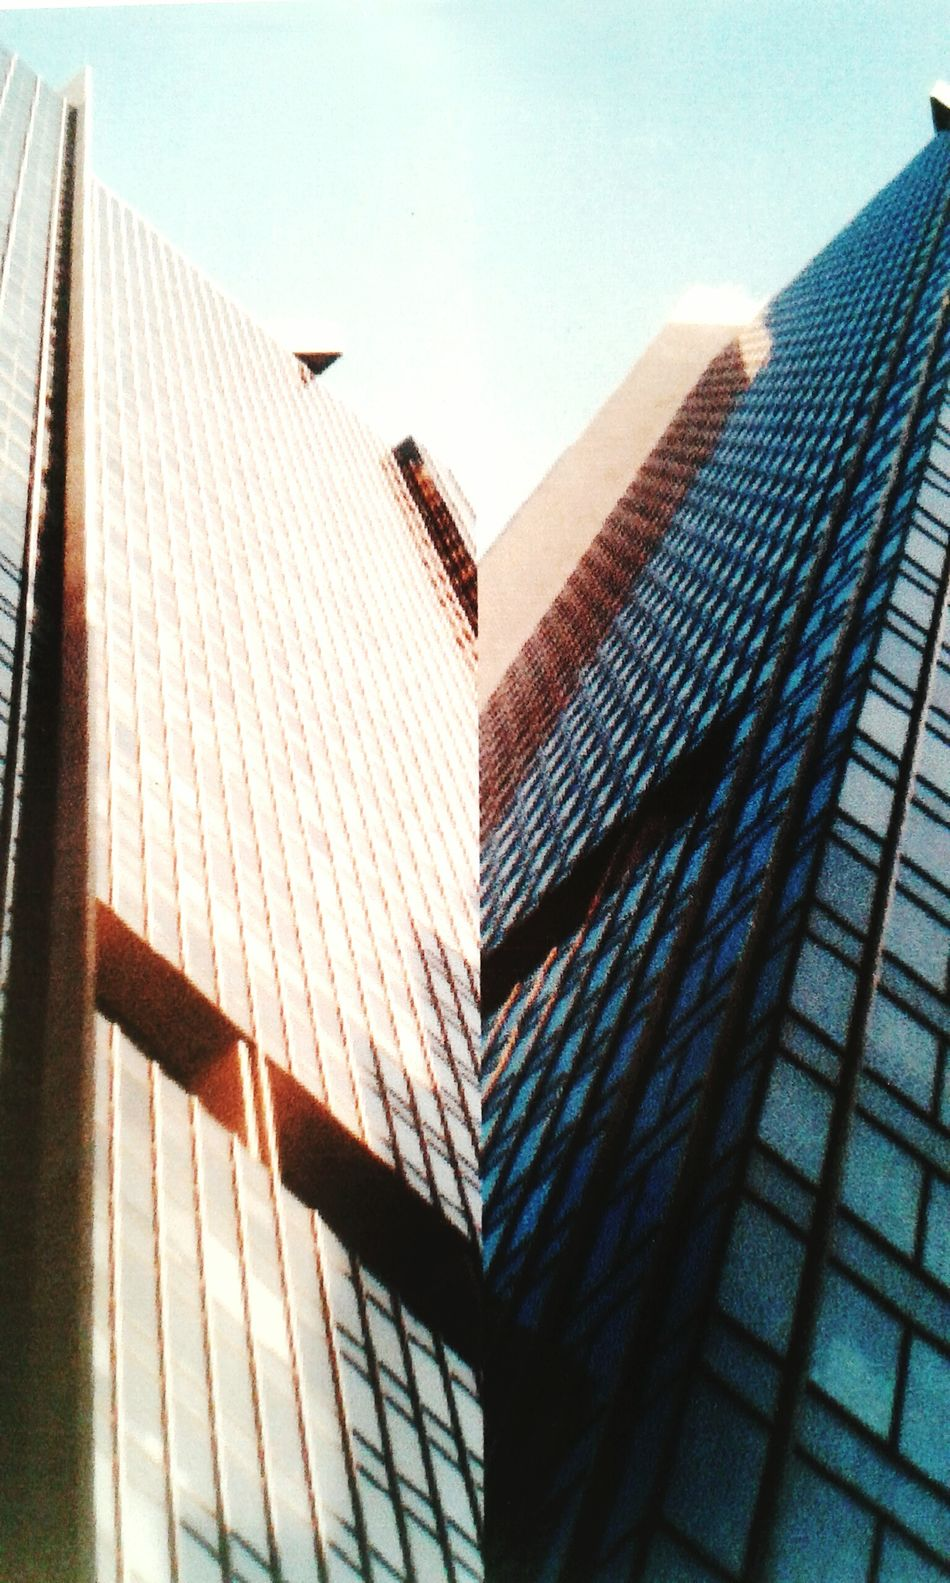 My Photography. Still Life. Buildings. Artitecture. Urban Geometry. Looking Up Landscape _ Collection Cityscapes